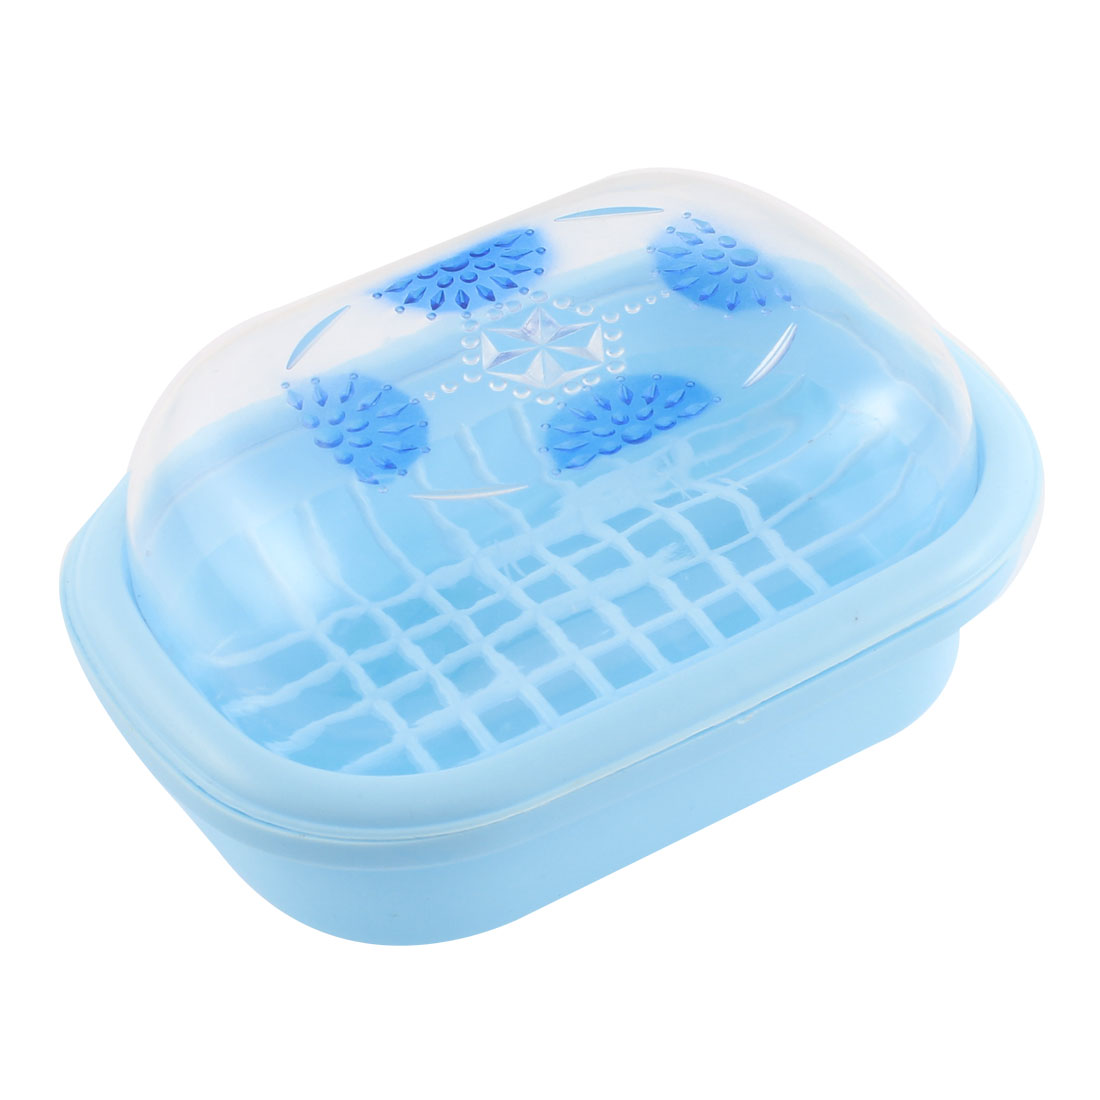 Plastic Clear Cover Bathroom Soap Box Holder Case Container Blue